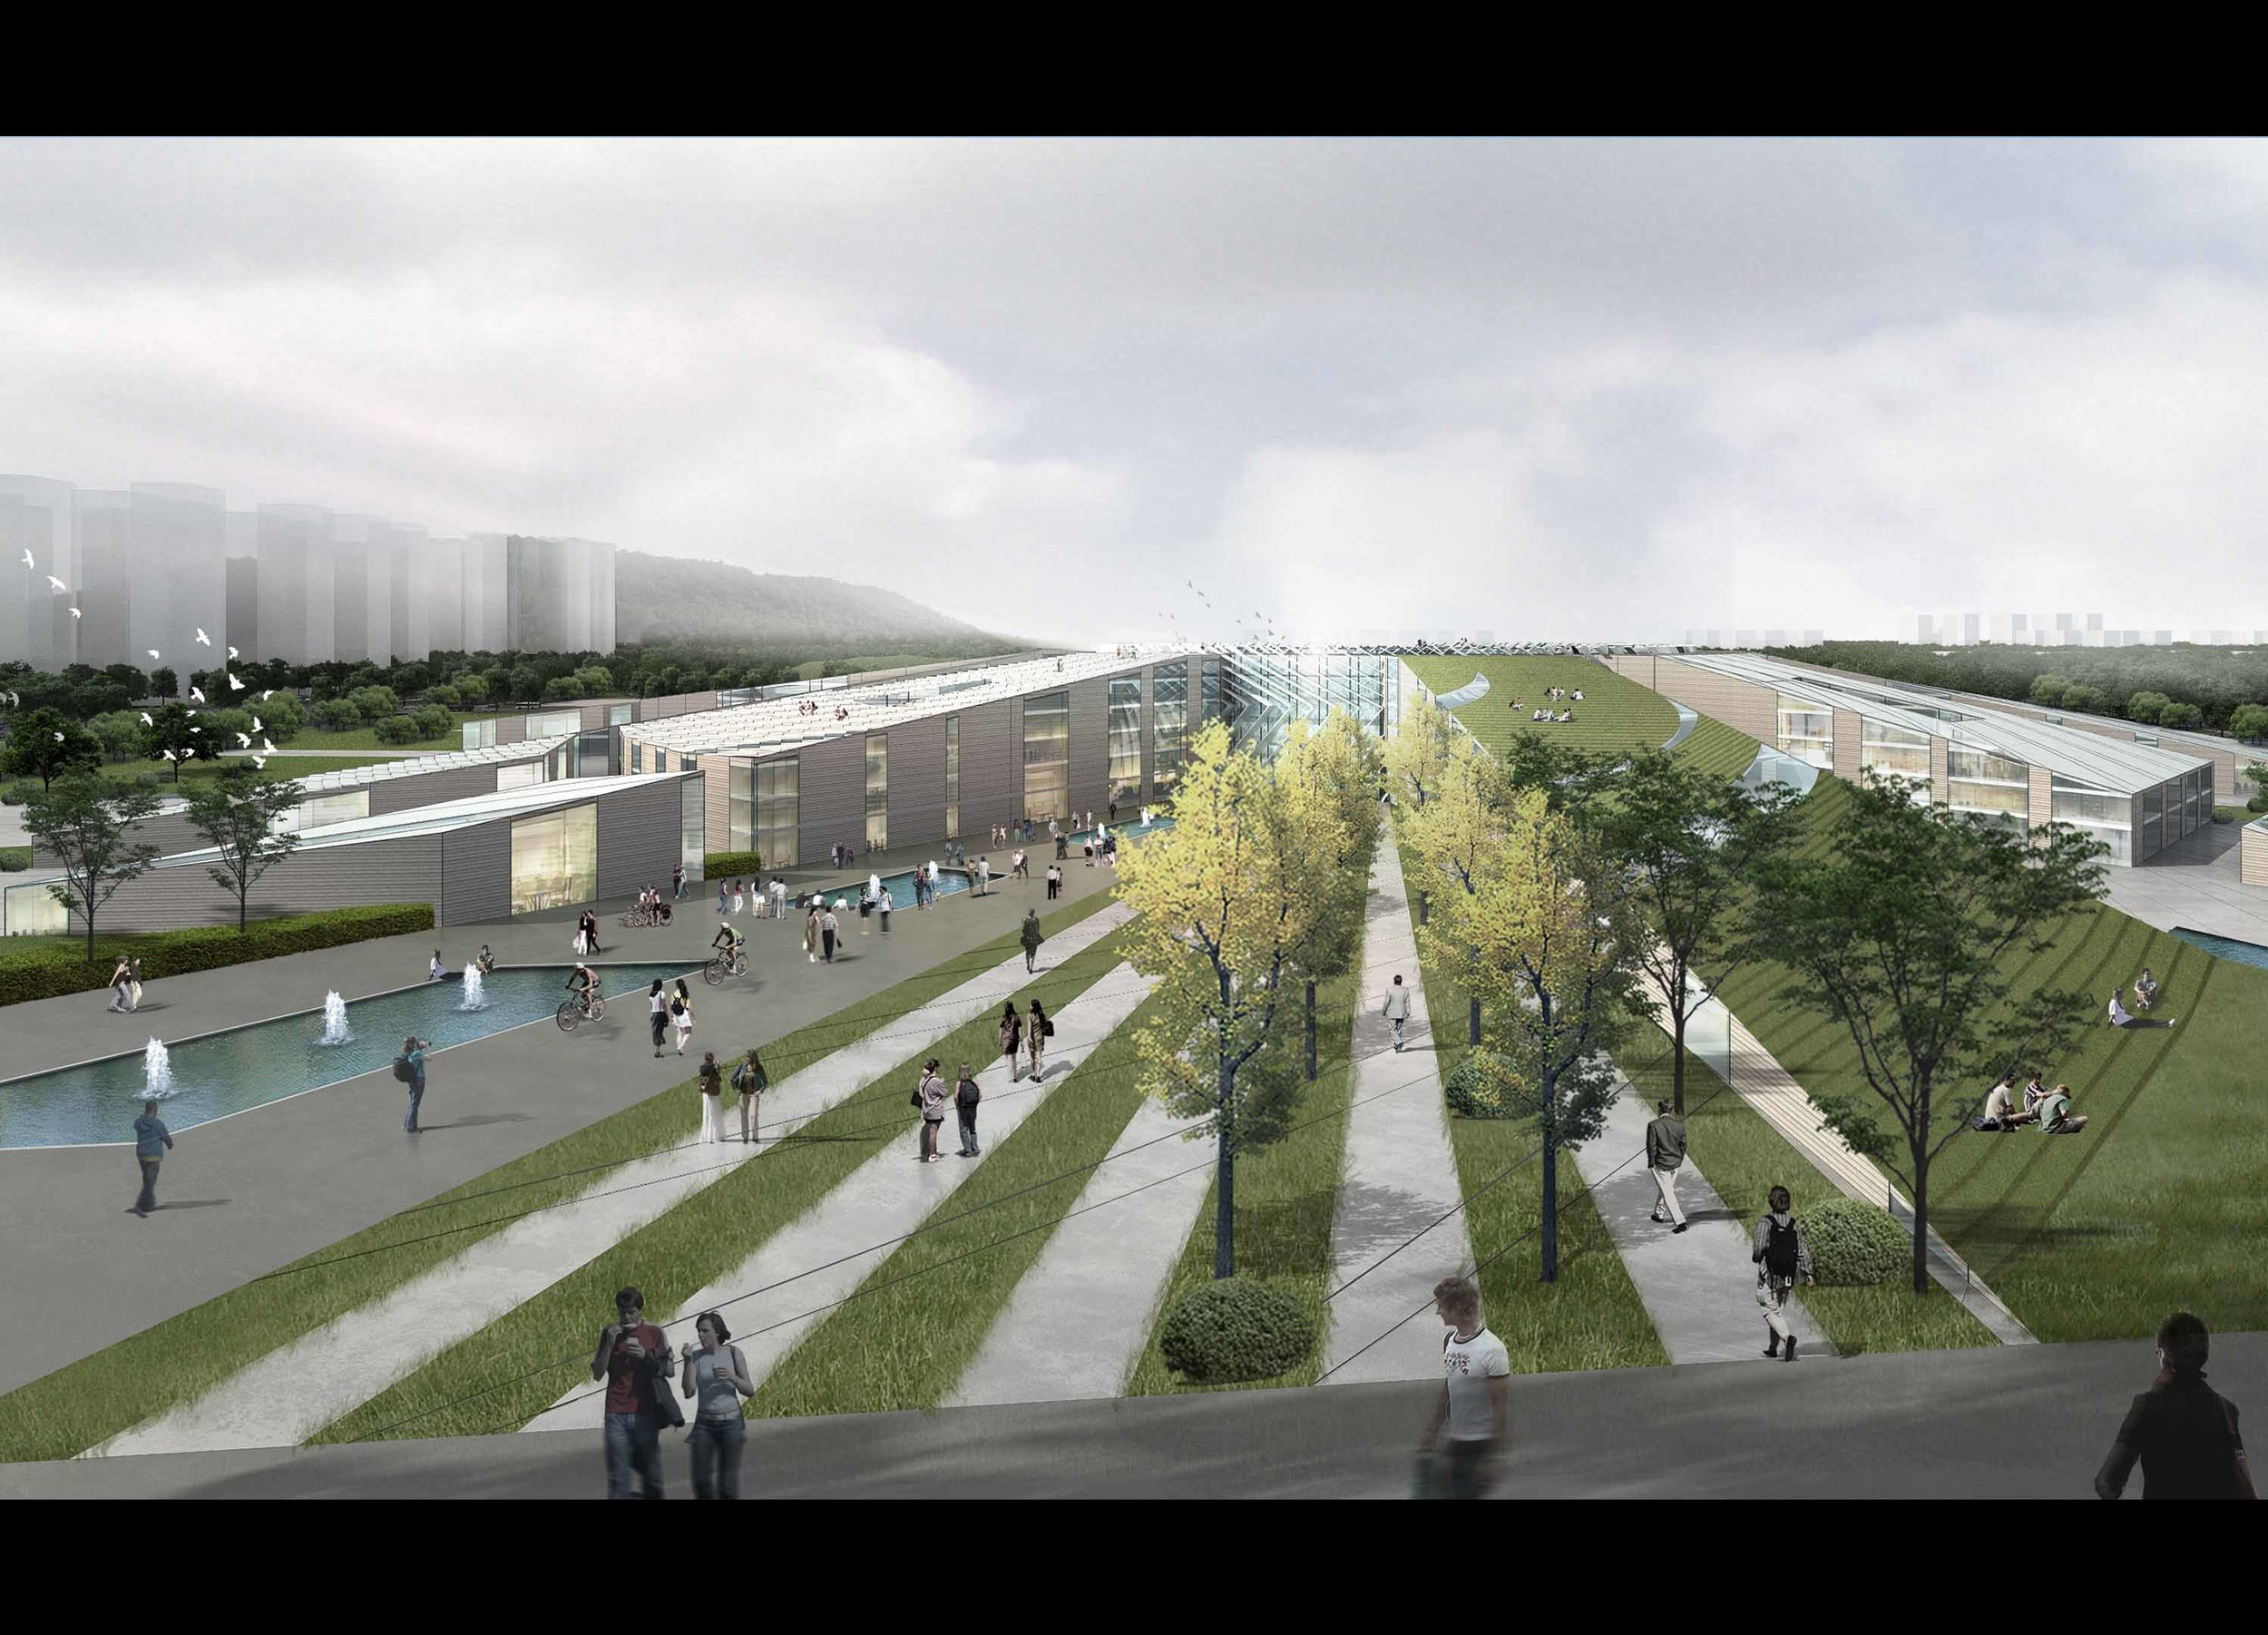 architecture and engineering office Berlin competition image